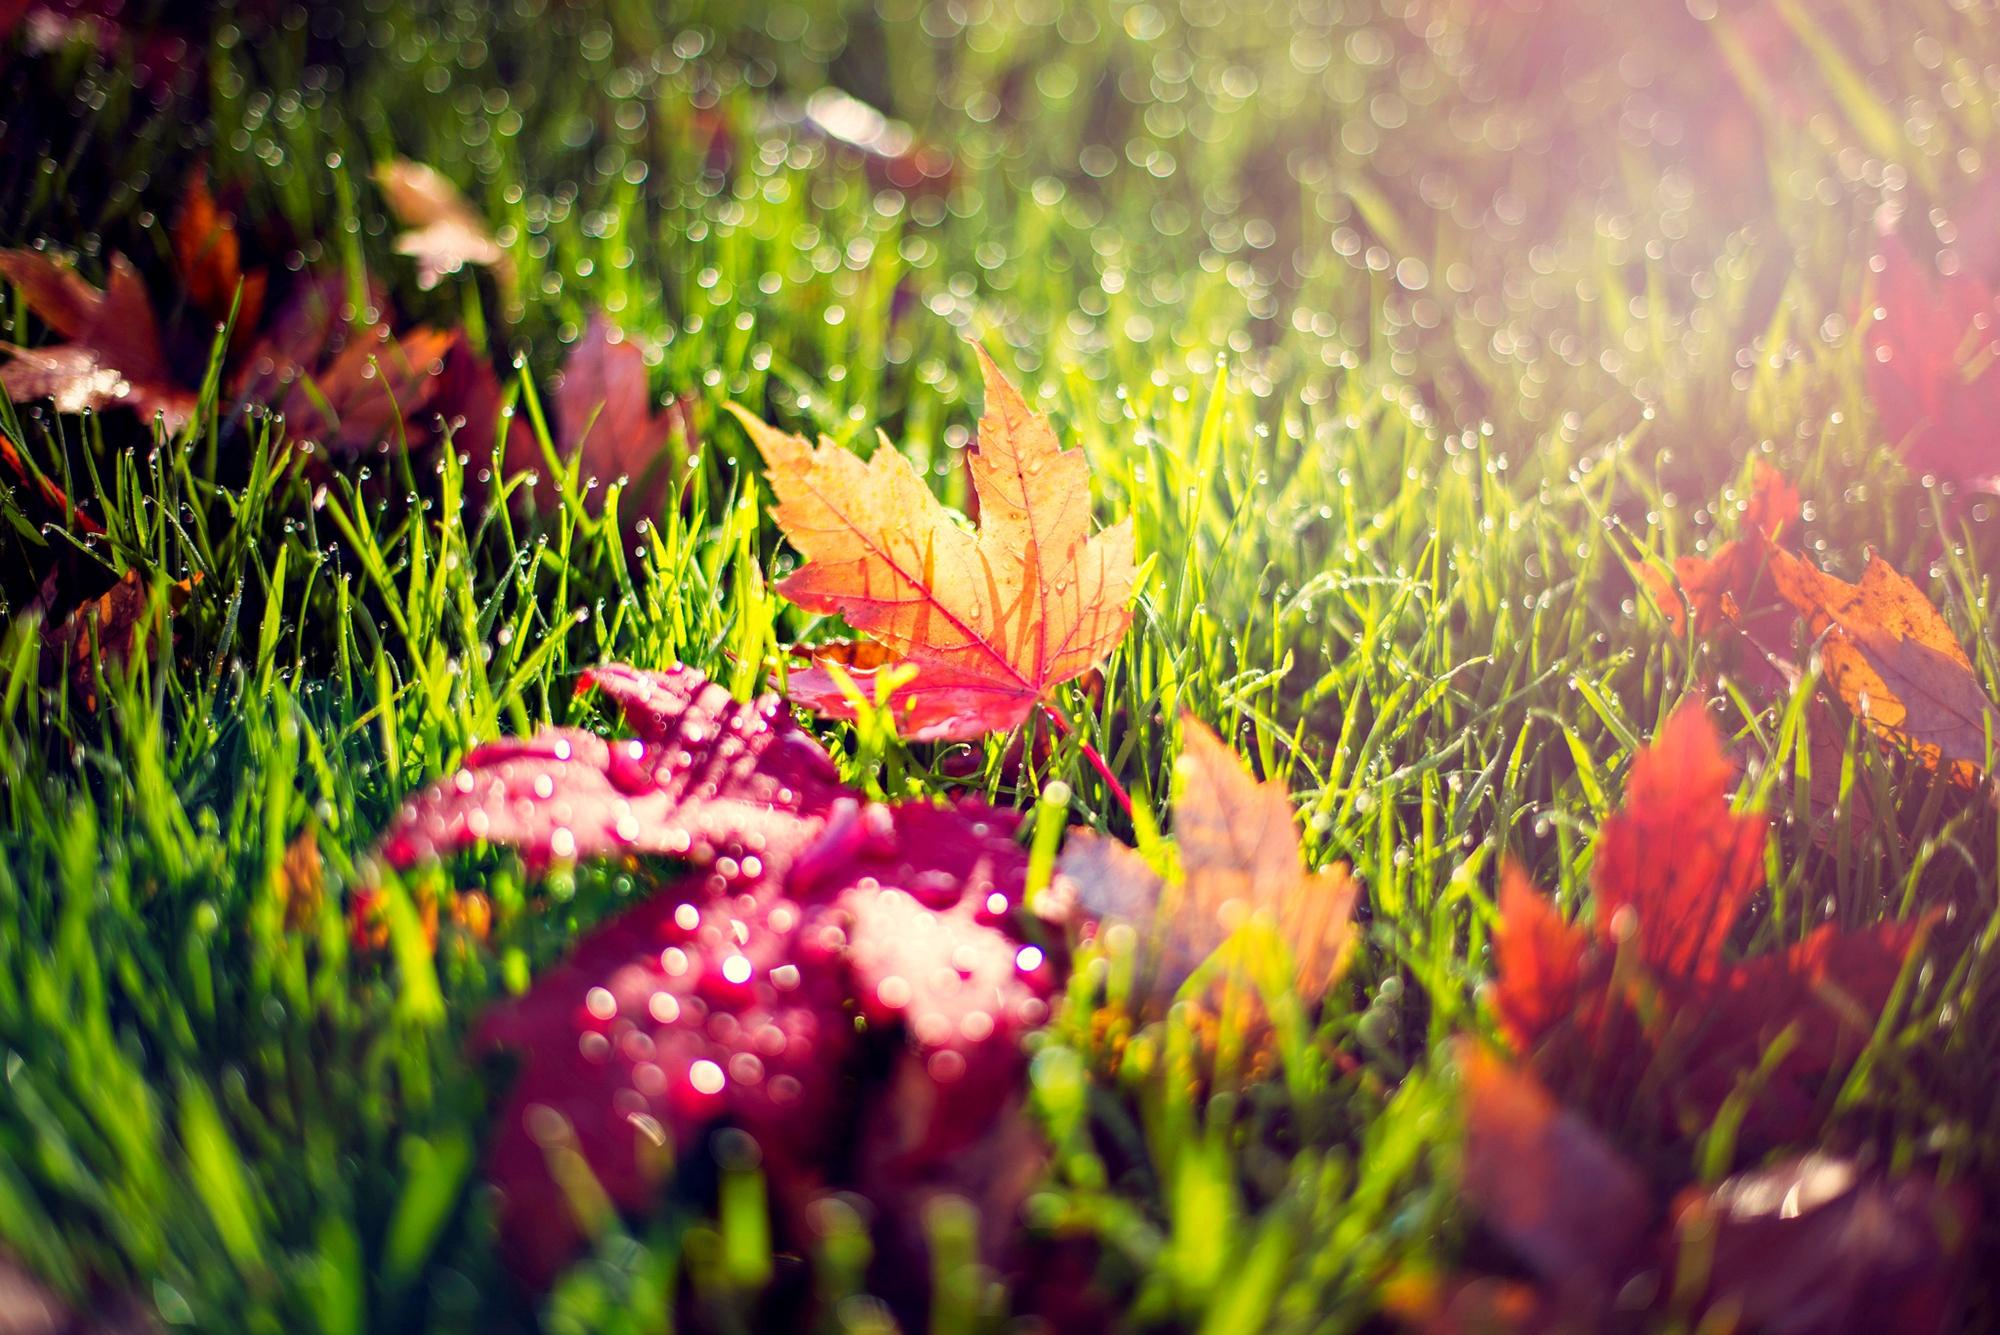 leaves images